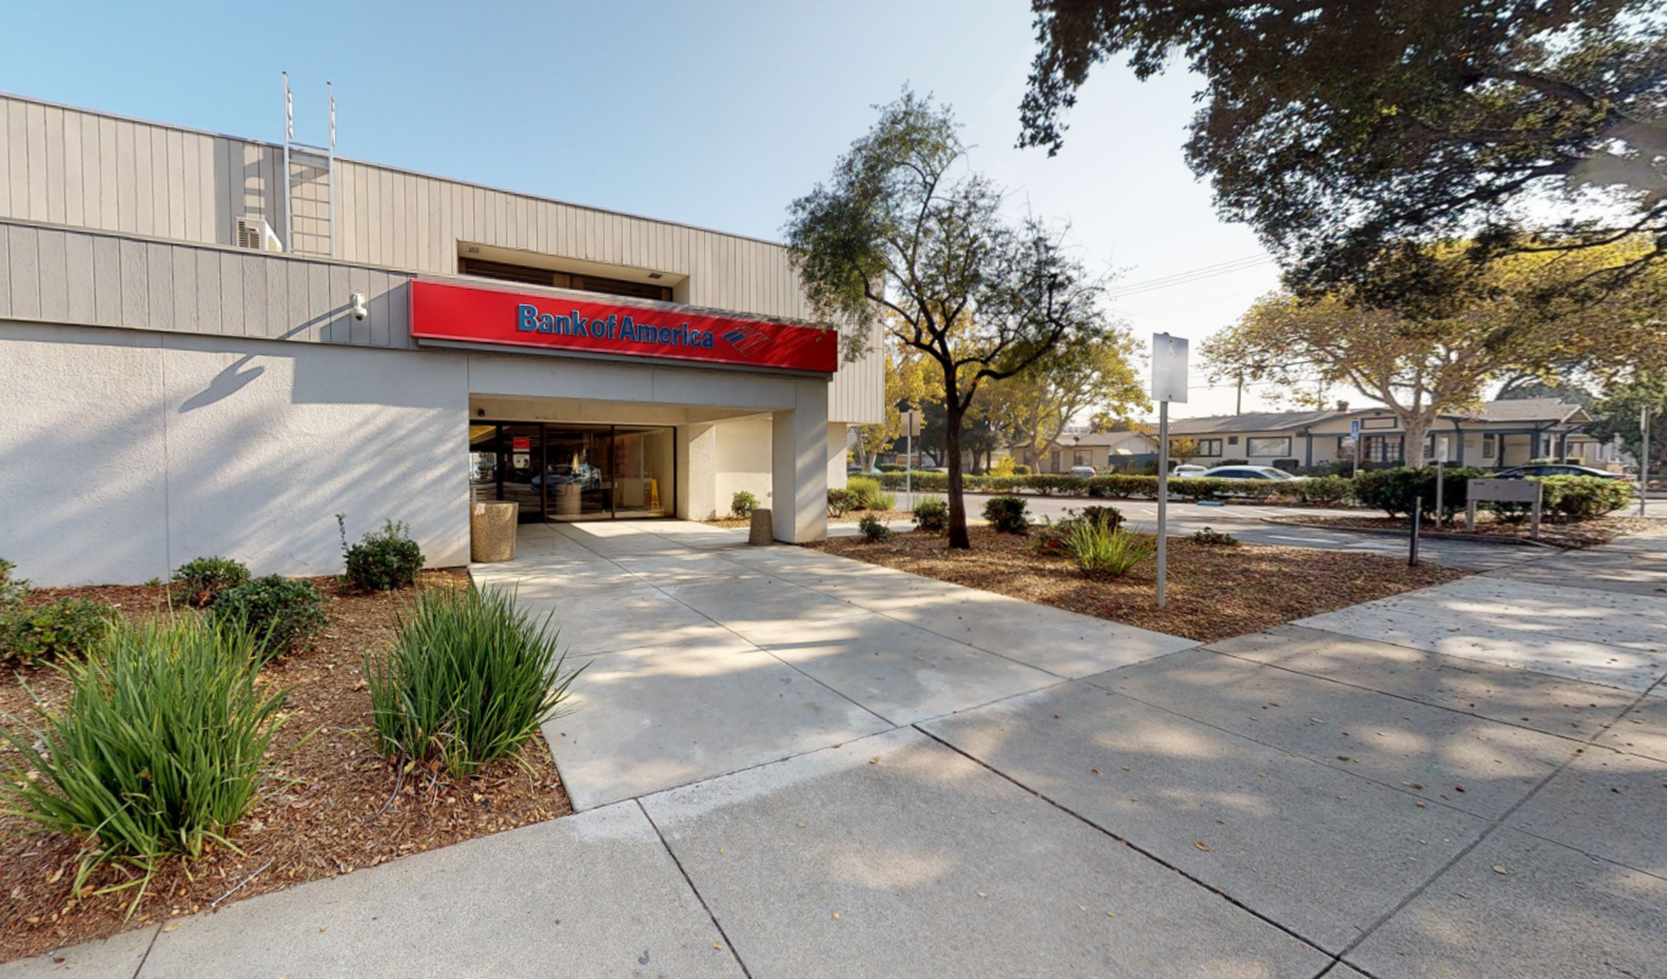 Bank of America financial center with drive-thru ATM | 7825 Monterey St, Gilroy, CA 95020